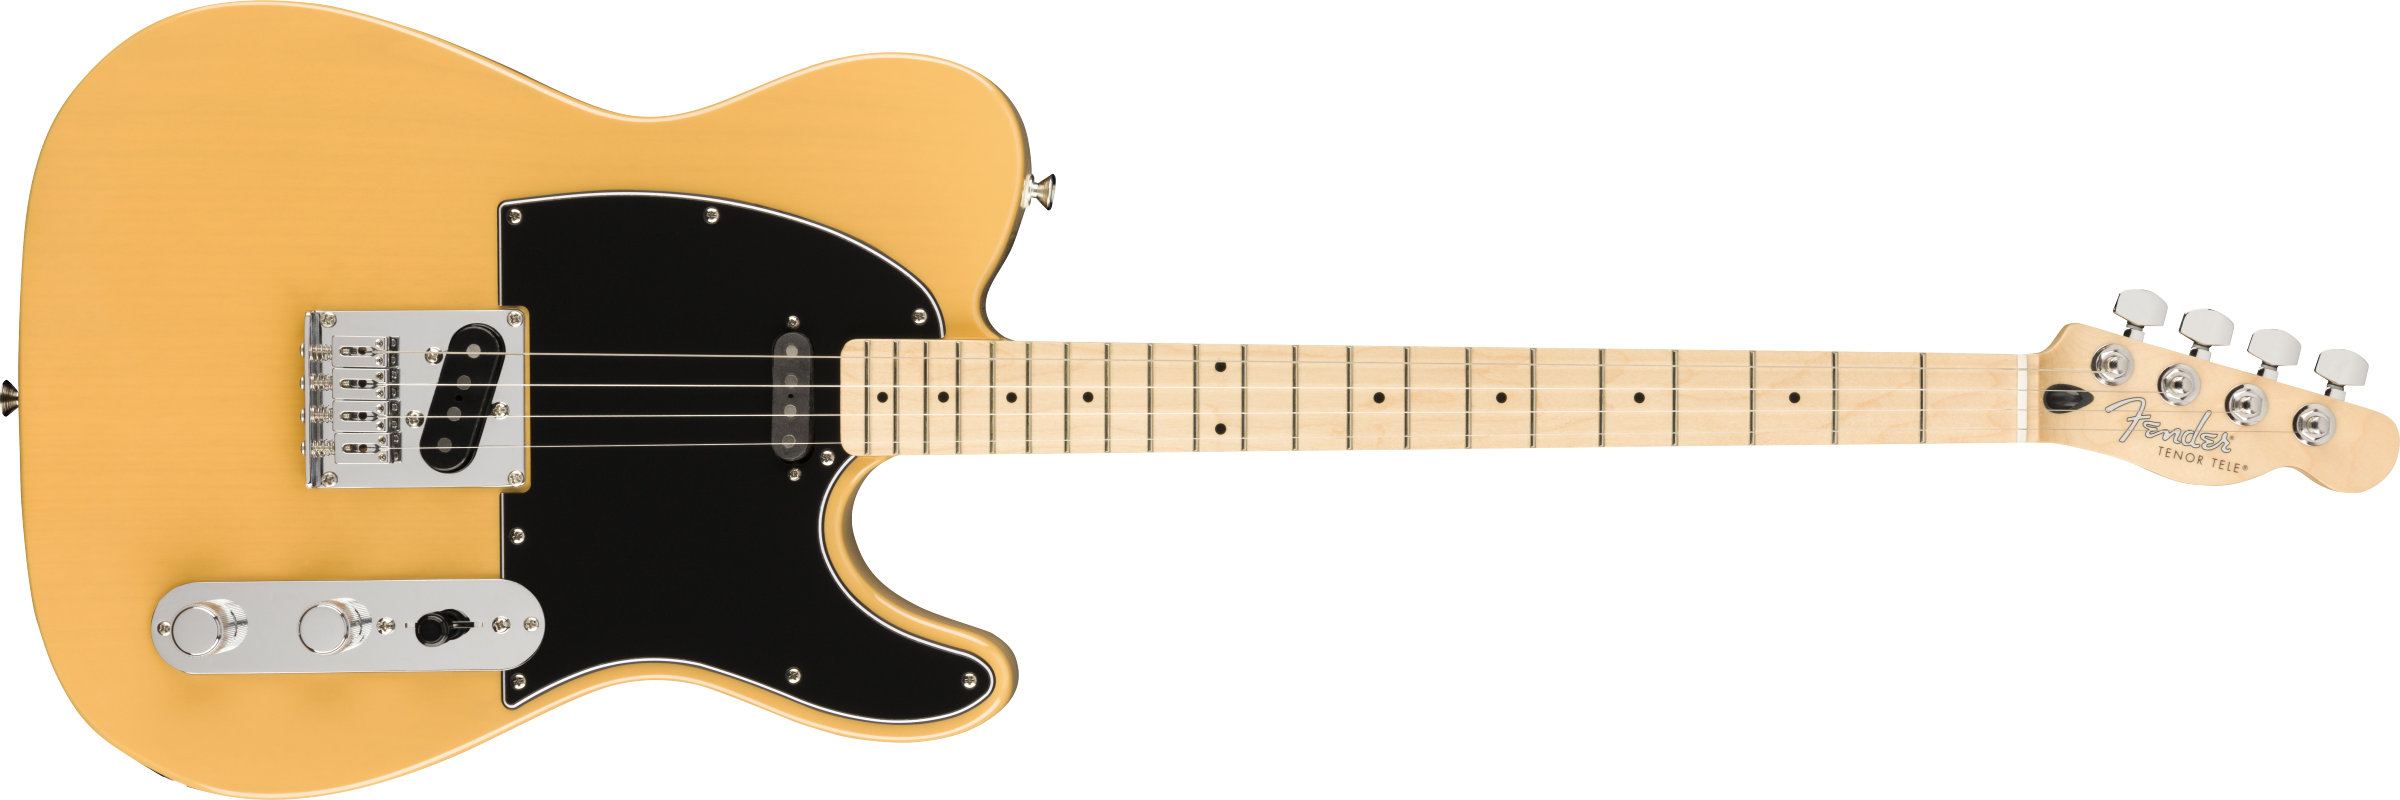 Fender Alternate Reality Tenor Tele - Butterscotch Blonde